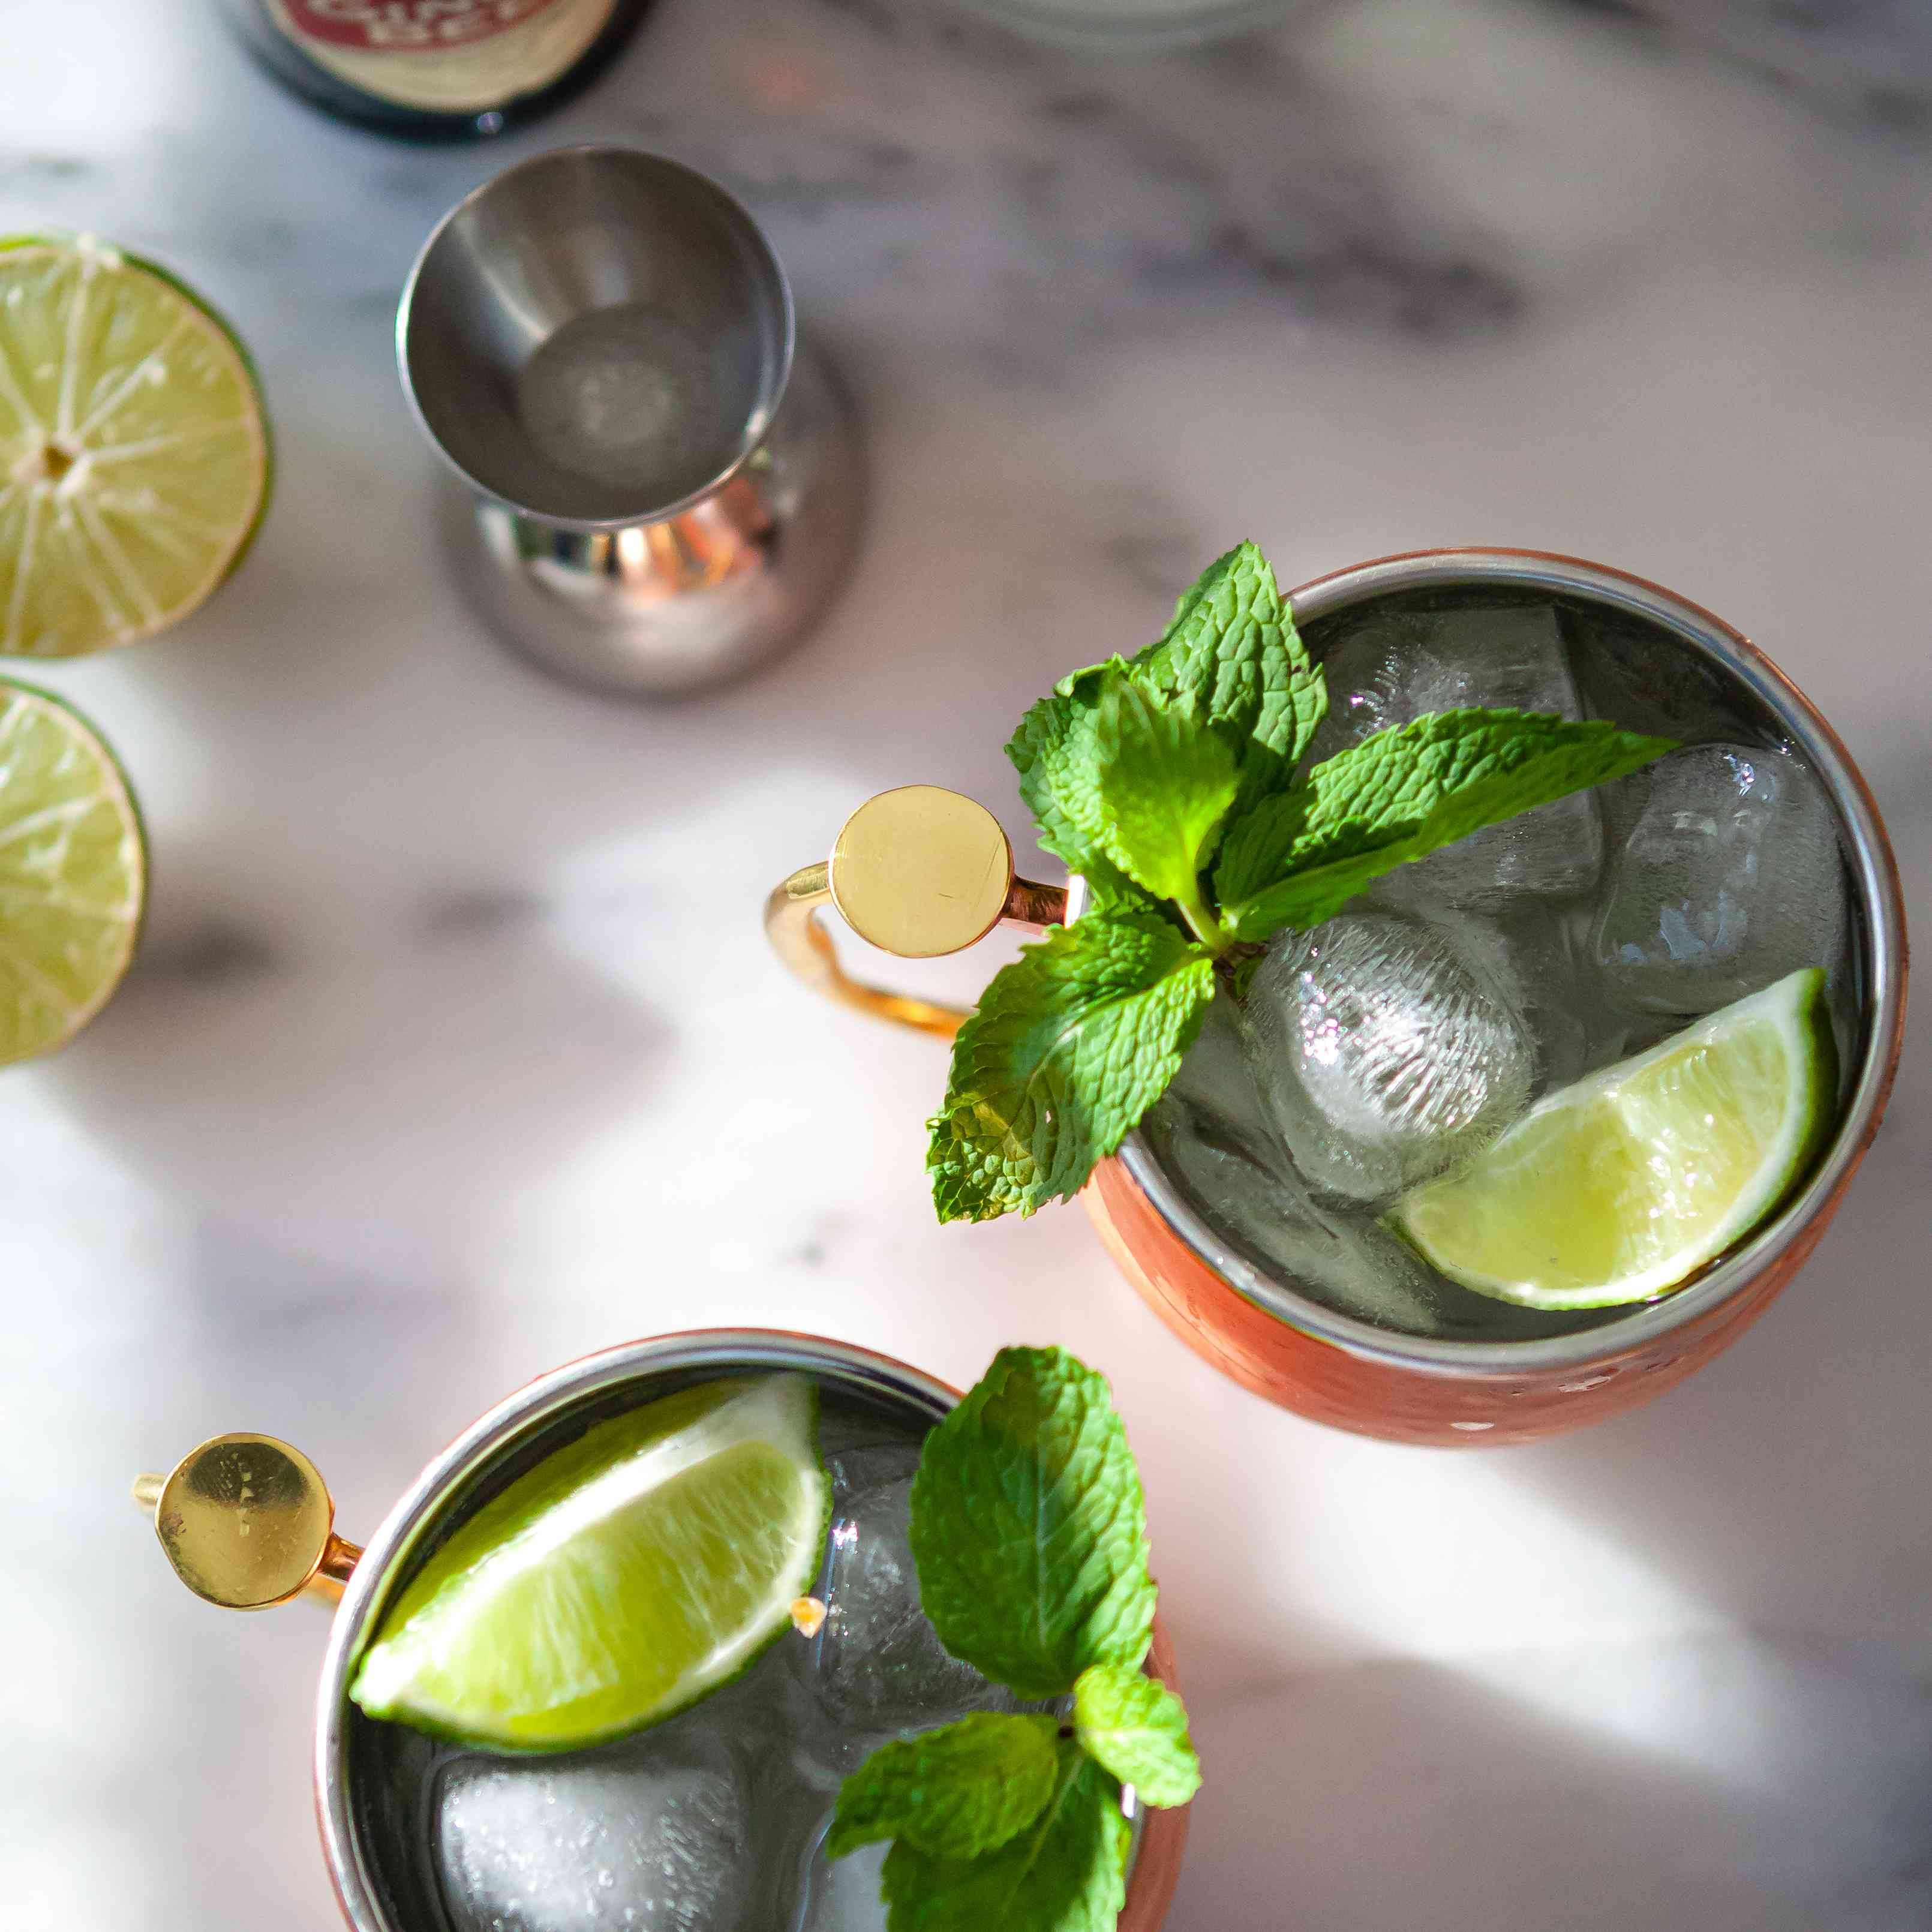 Overhead view of two of the BEST Moscow Mule cocktails with bottles and sliced lime in the upper left.